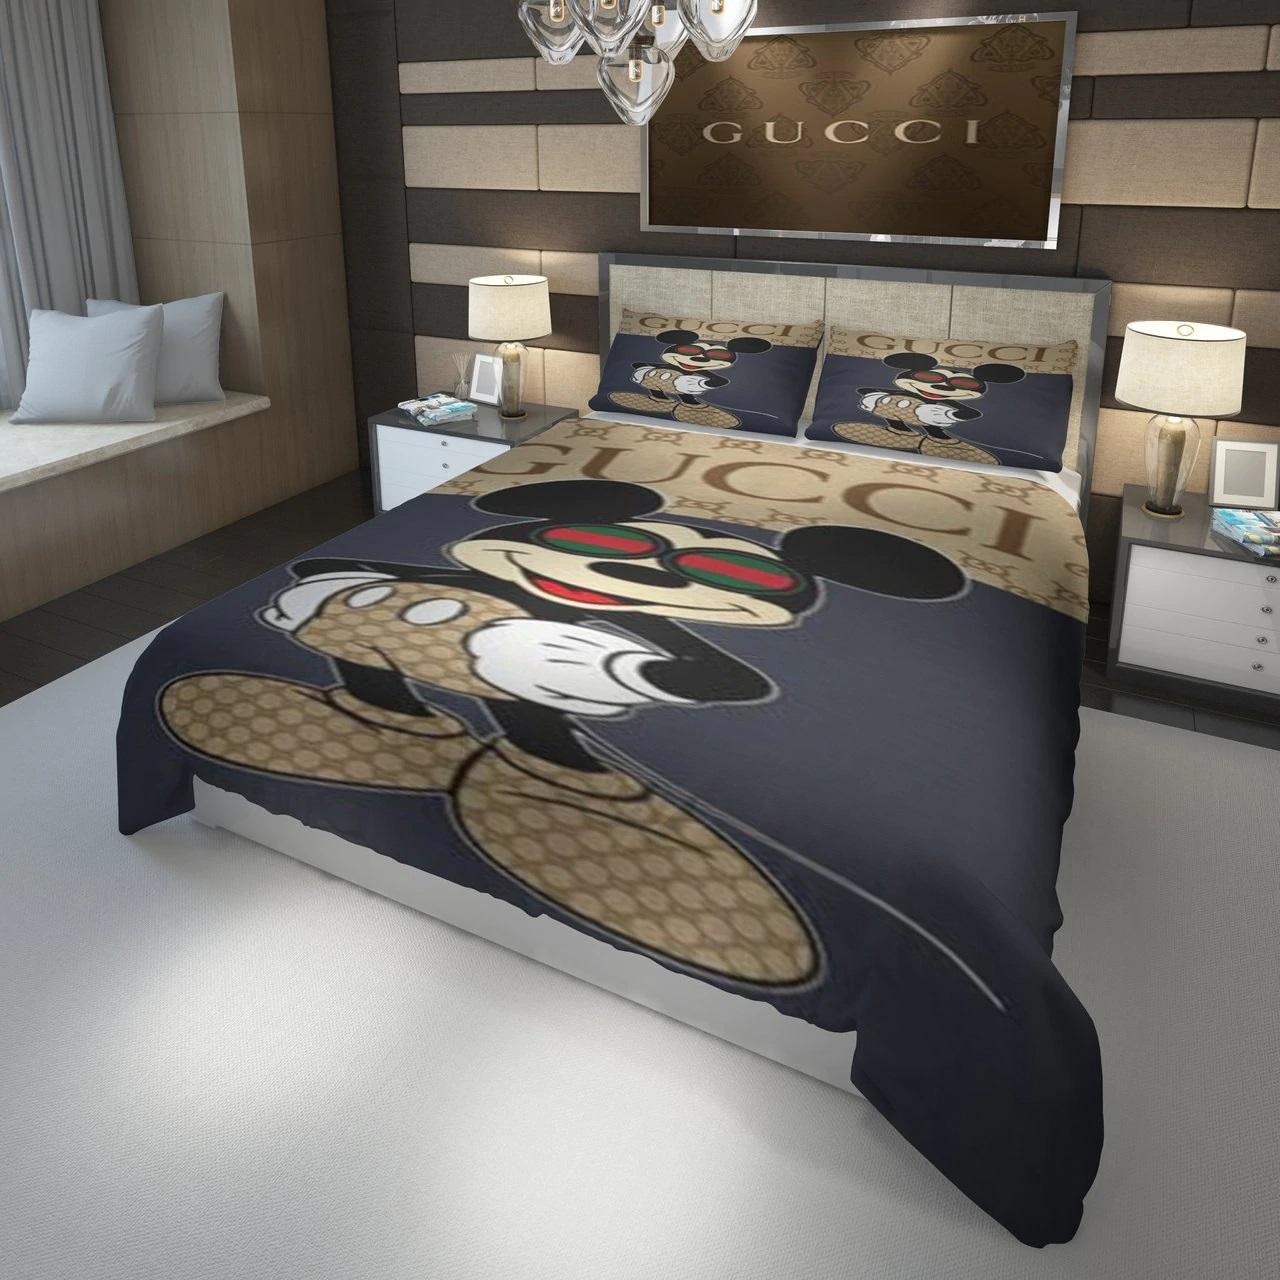 gucci mickey mouse with glasses bedding set 1